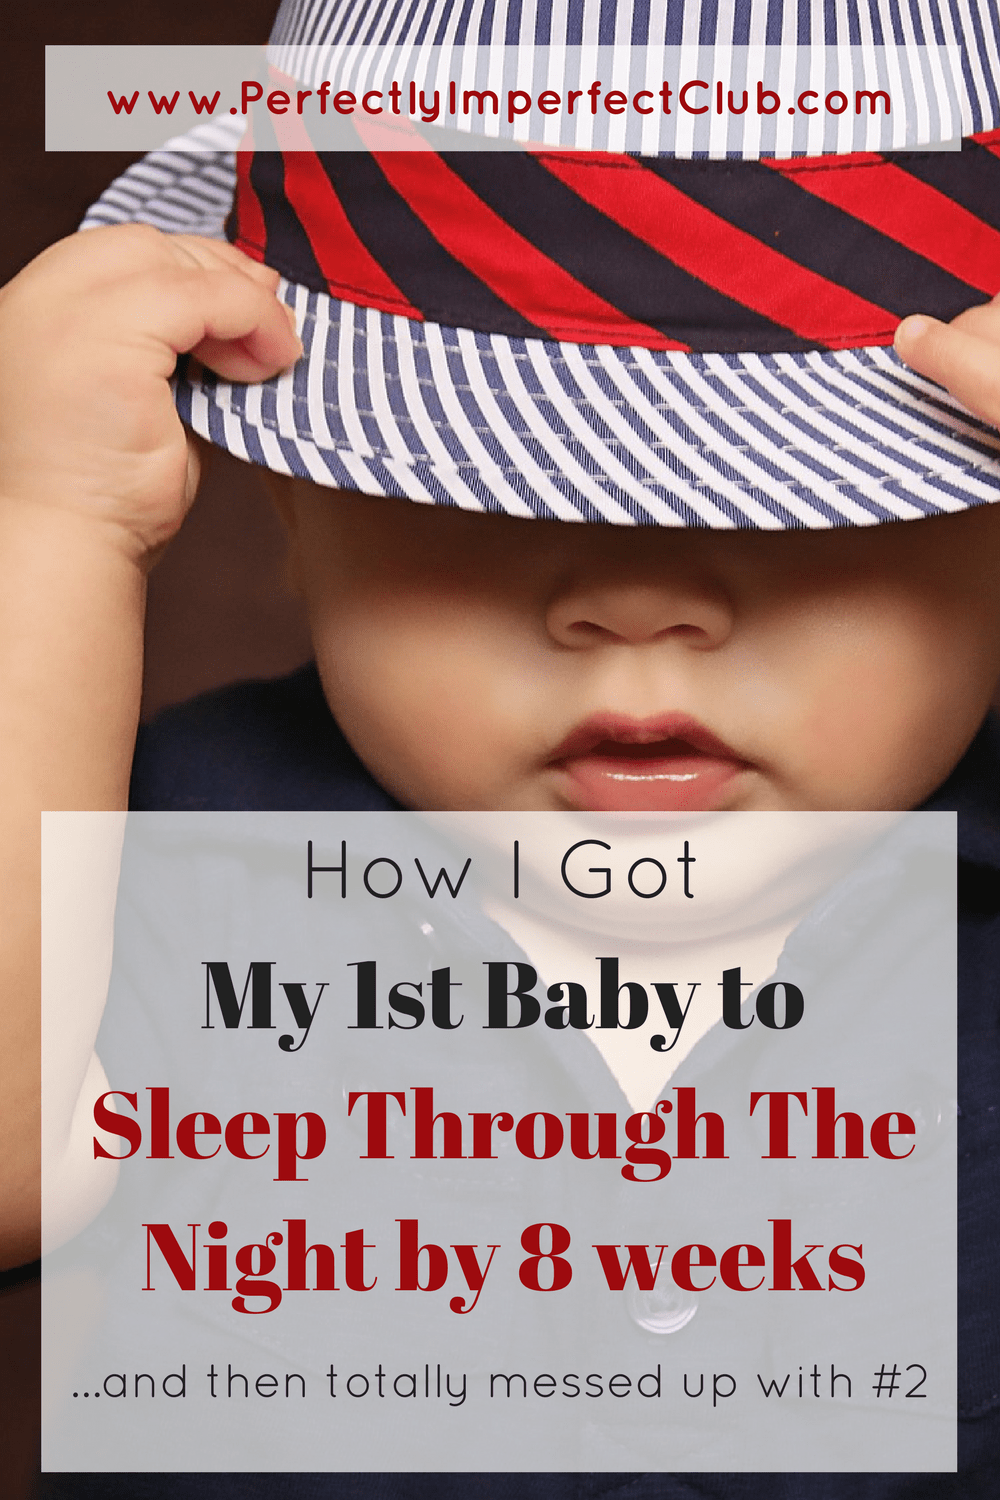 I got my first baby to sleep through the night by 8 weeks, but mothered totally differently for #2 and paid the price.